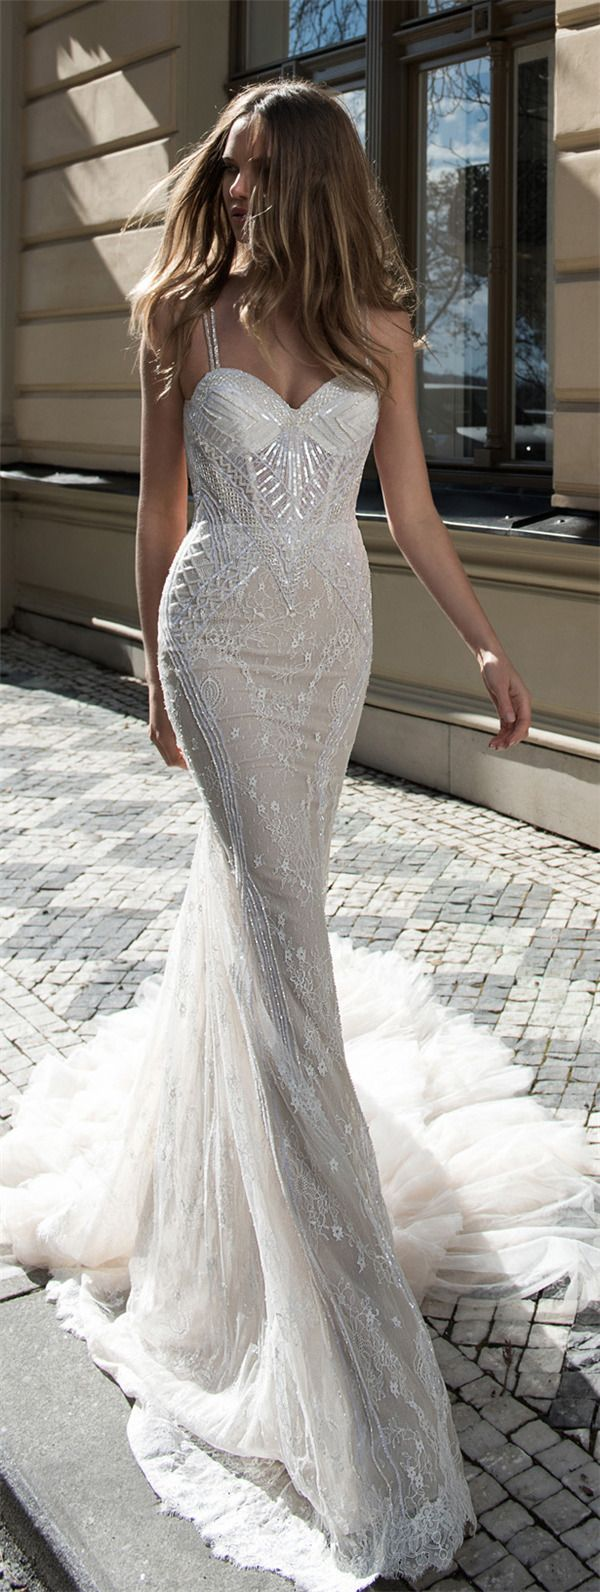 Best wedding dresses for short hair   best Weddings images on Pinterest  Tray tables Wedding ideas